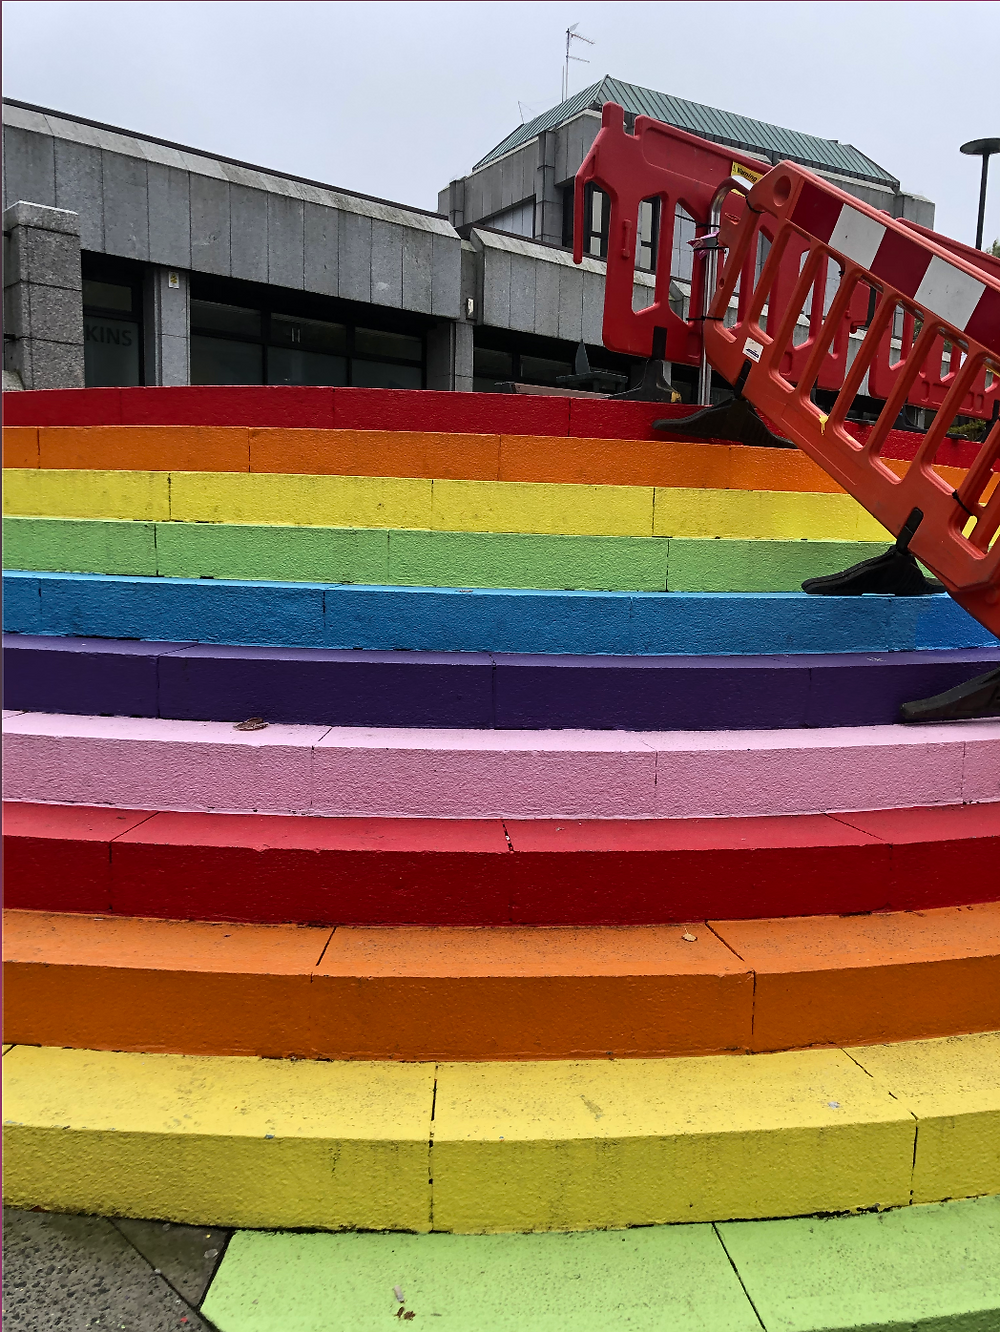 RaInBoW steps and construction at Union Square, Aberdeen